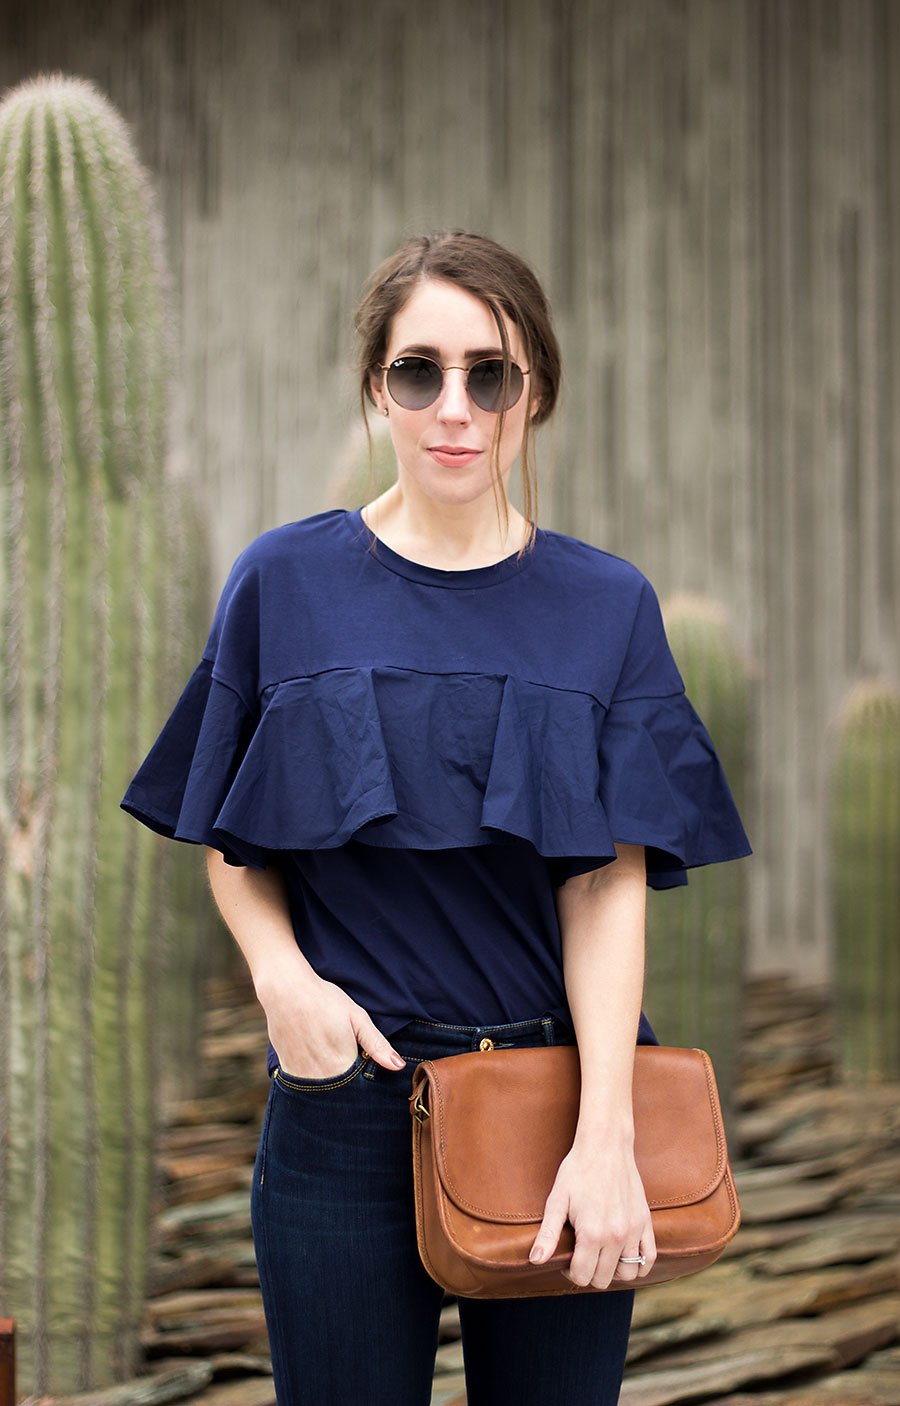 Ruffle tee shirt, blue tee shirt, Nordstrom Ruffle Tee, how to style flare jeans, flare jeans, Express jeans, Express flare jeans, Casual outfit for women, women's fashion, dressy casual outfit for women, Coach purse, classic Coach purse